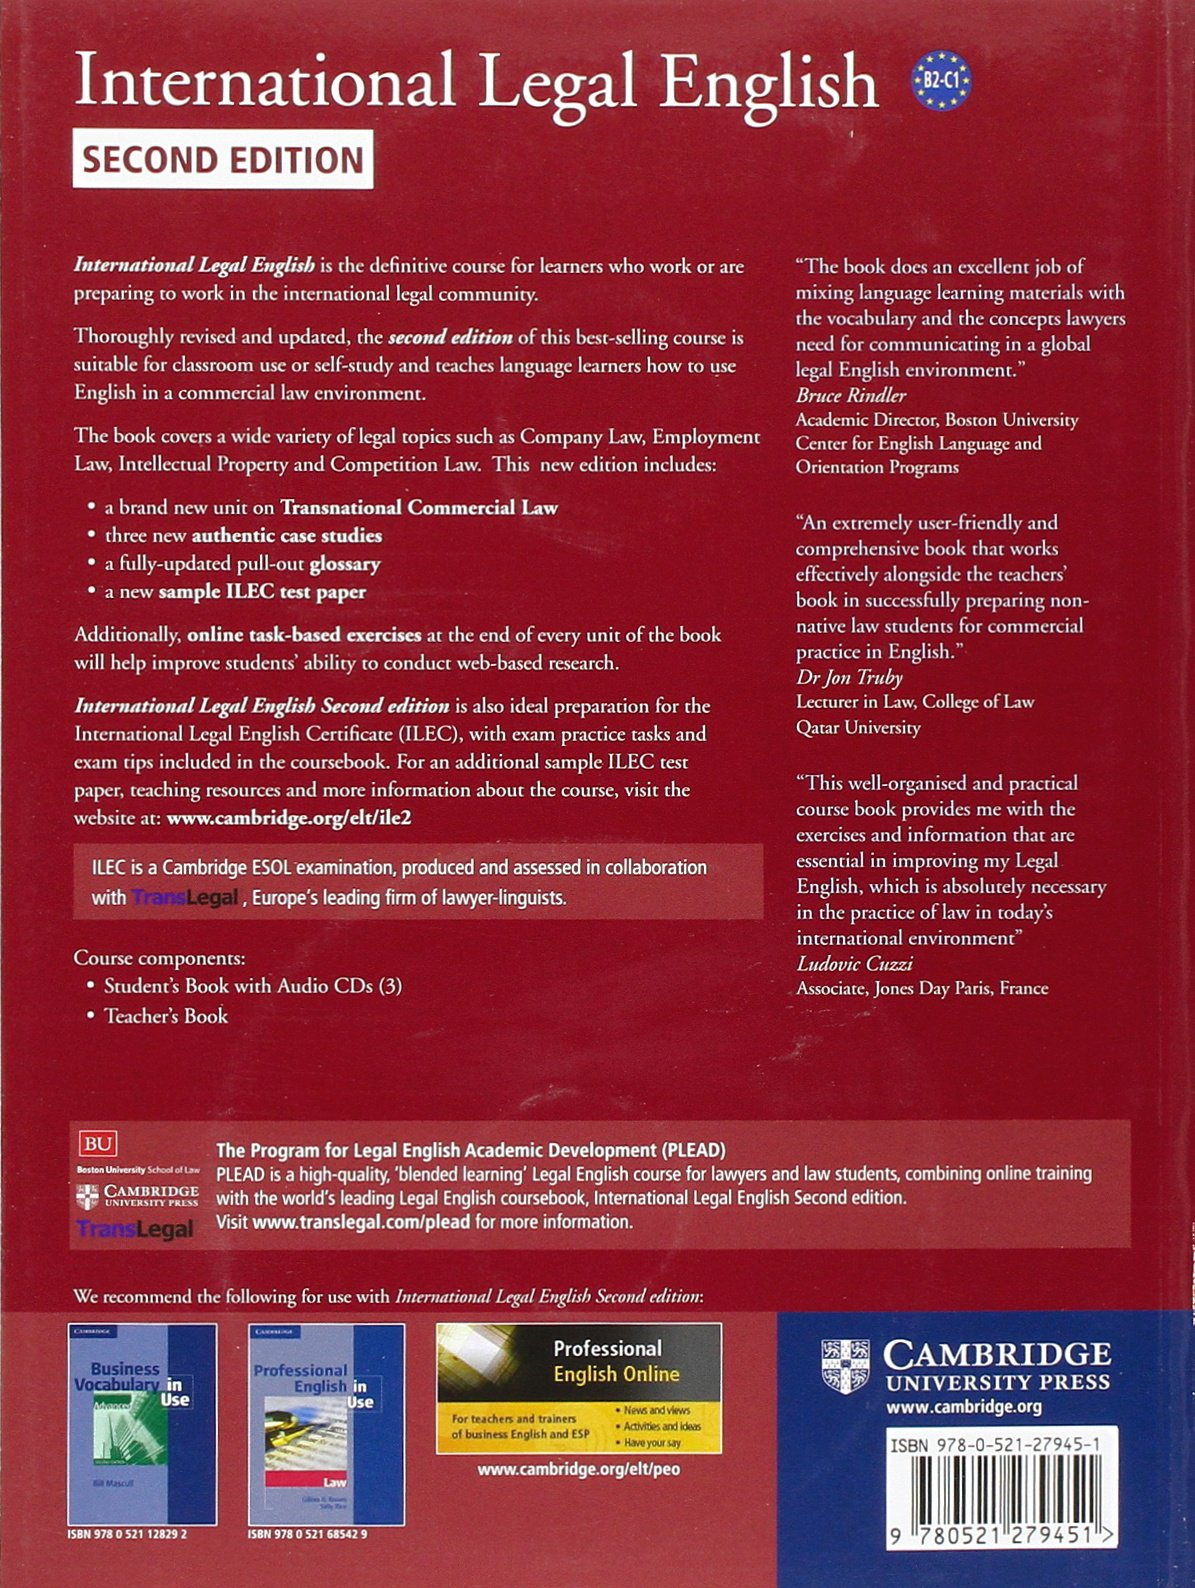 International Legal English Student's Book with Audio CDs (3): A Course for Classroom or Self-study Use by Cambridge University Press